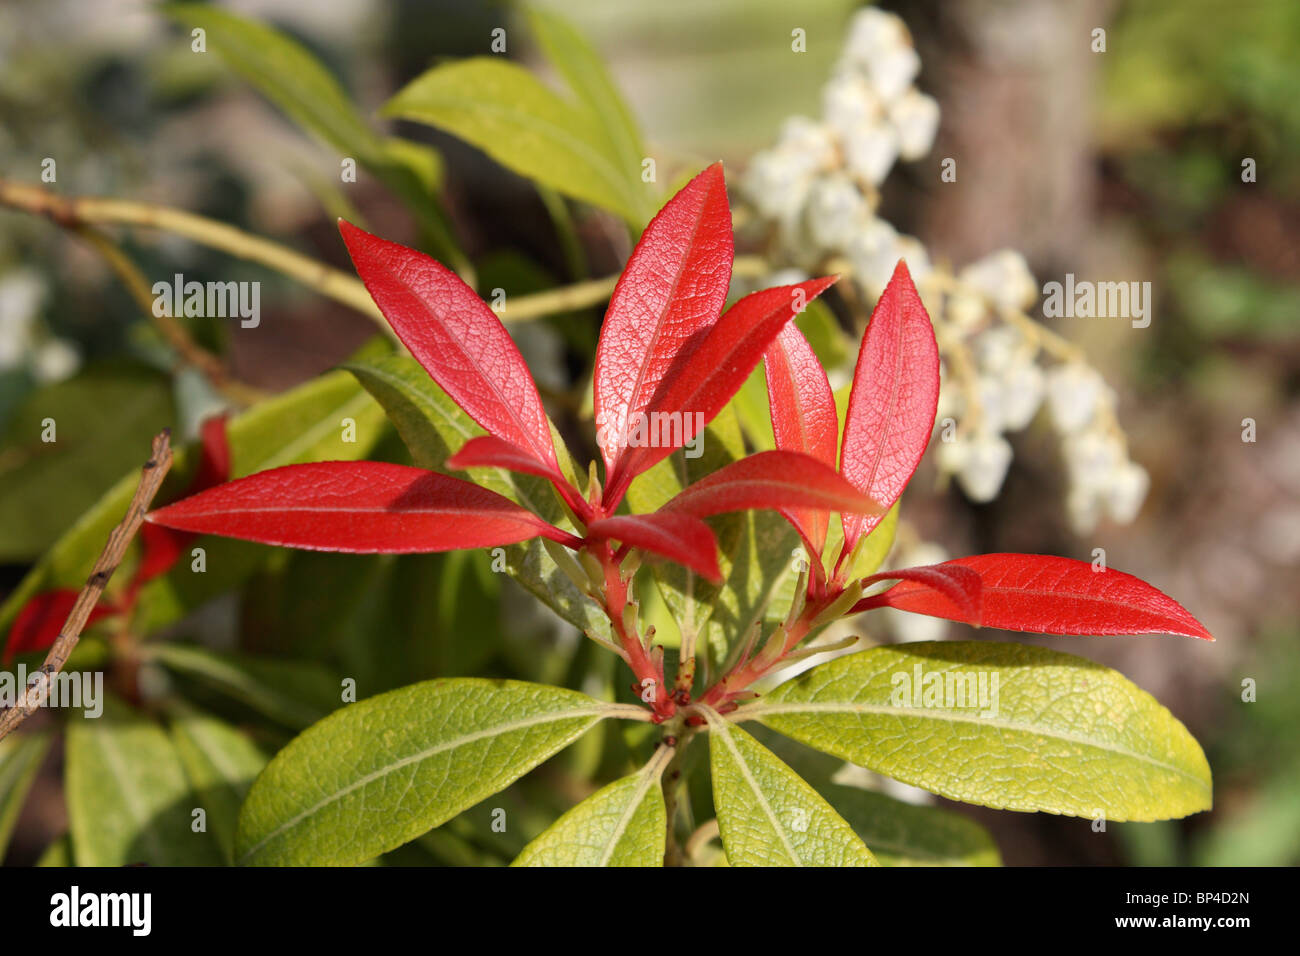 Bright red new leaves and white flowers of the evergreen pieris bright red new leaves and white flowers of the evergreen pieris shrub epsom surrey england uk mightylinksfo